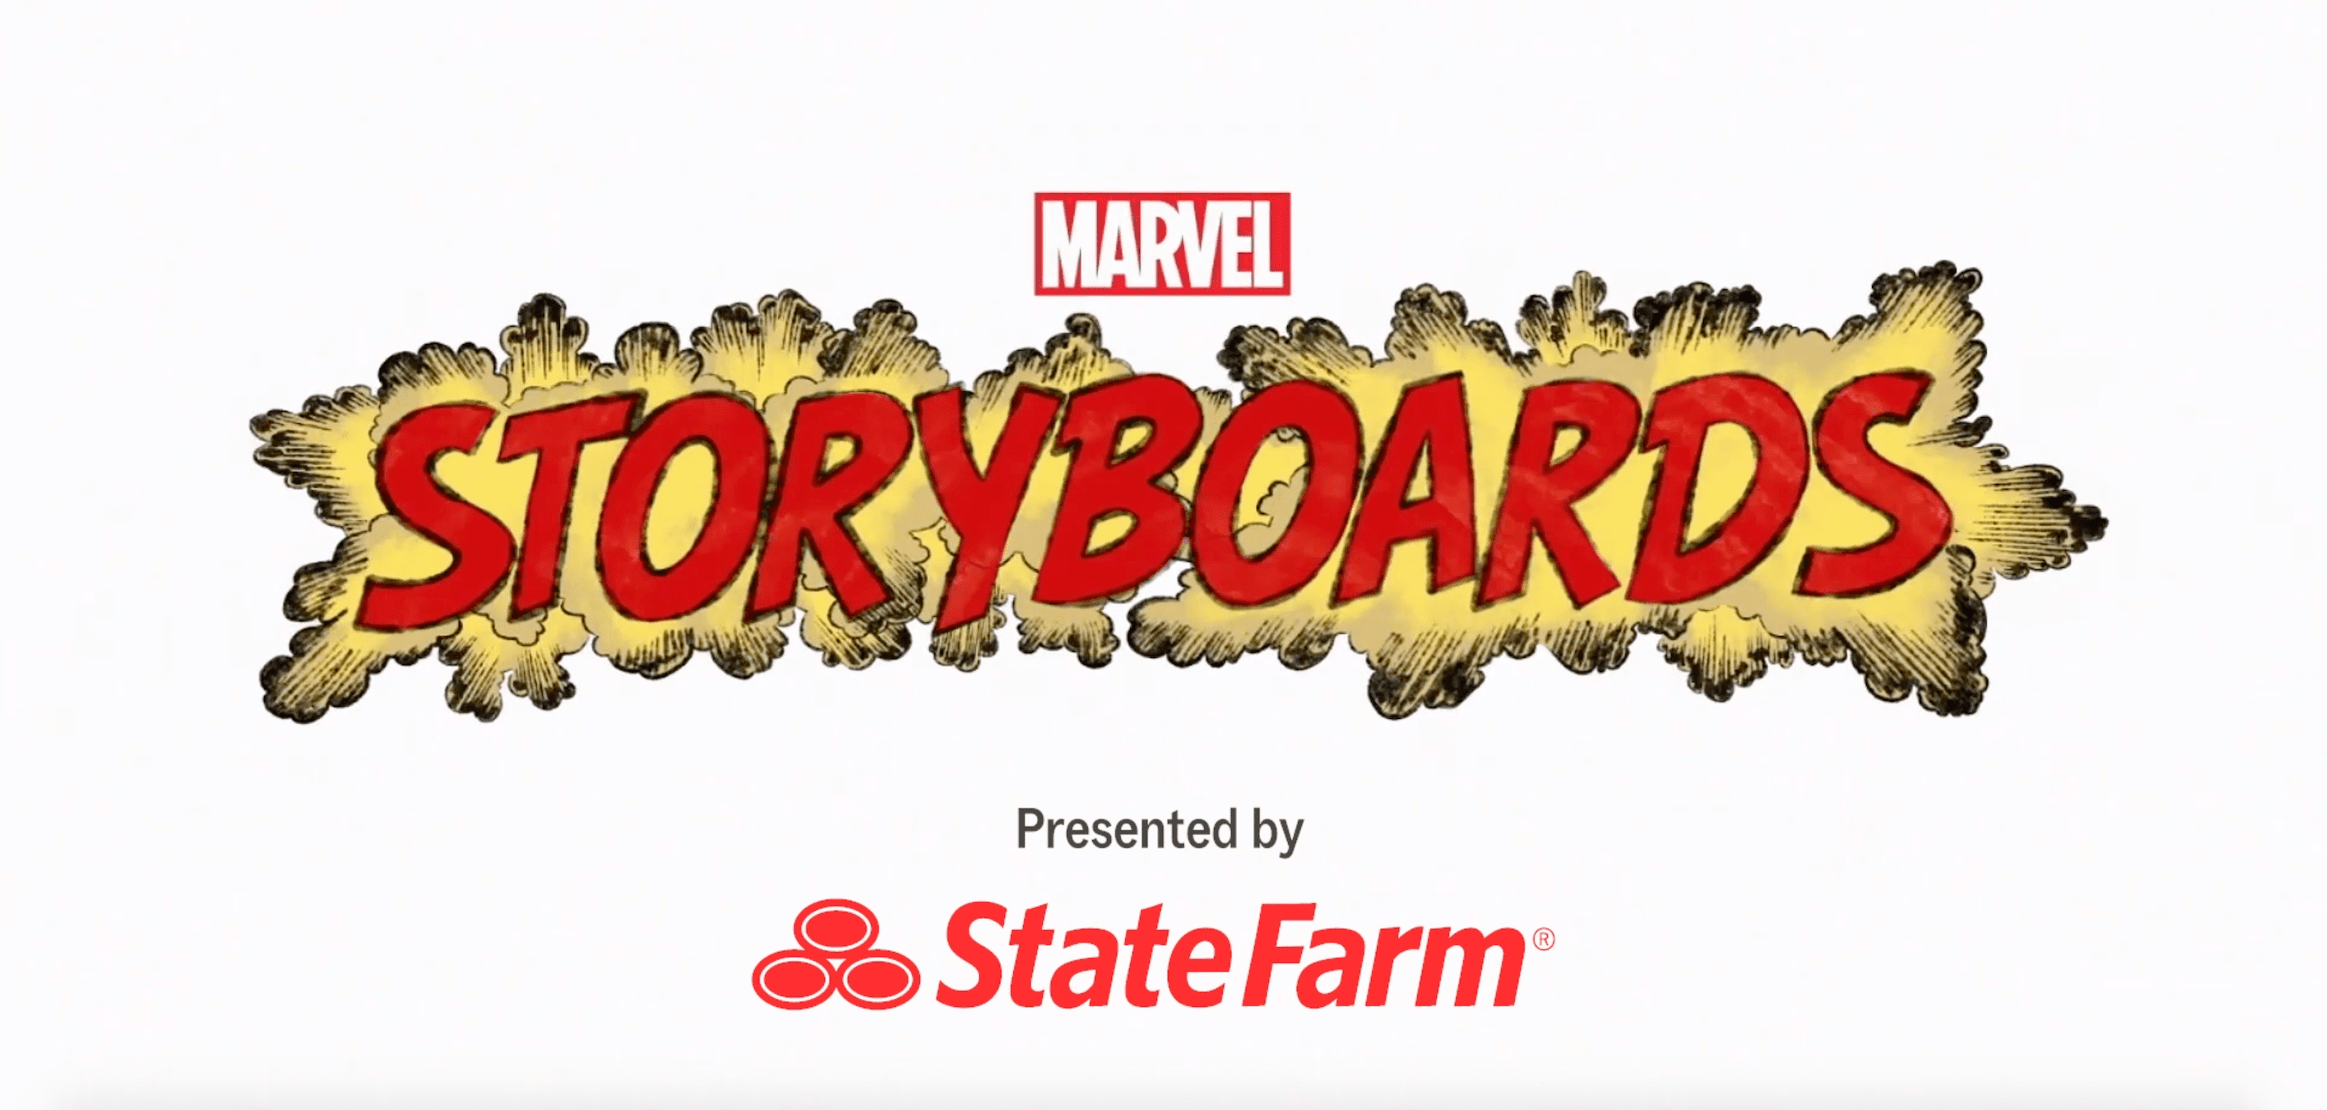 Marvel First Look: 'Marvel's Storyboards' trailer